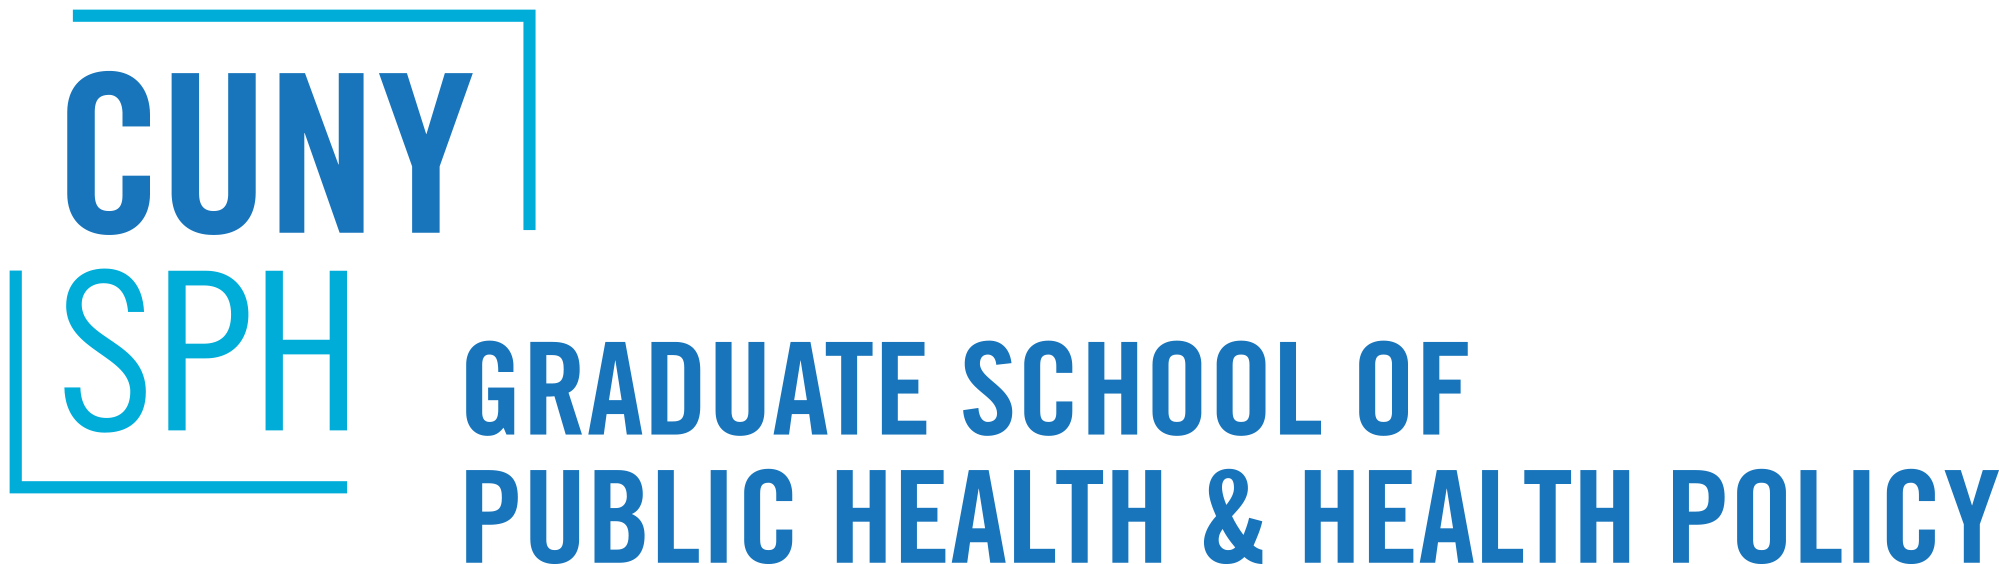 Graduate School of Public Health and Health Policy at the City University of New York